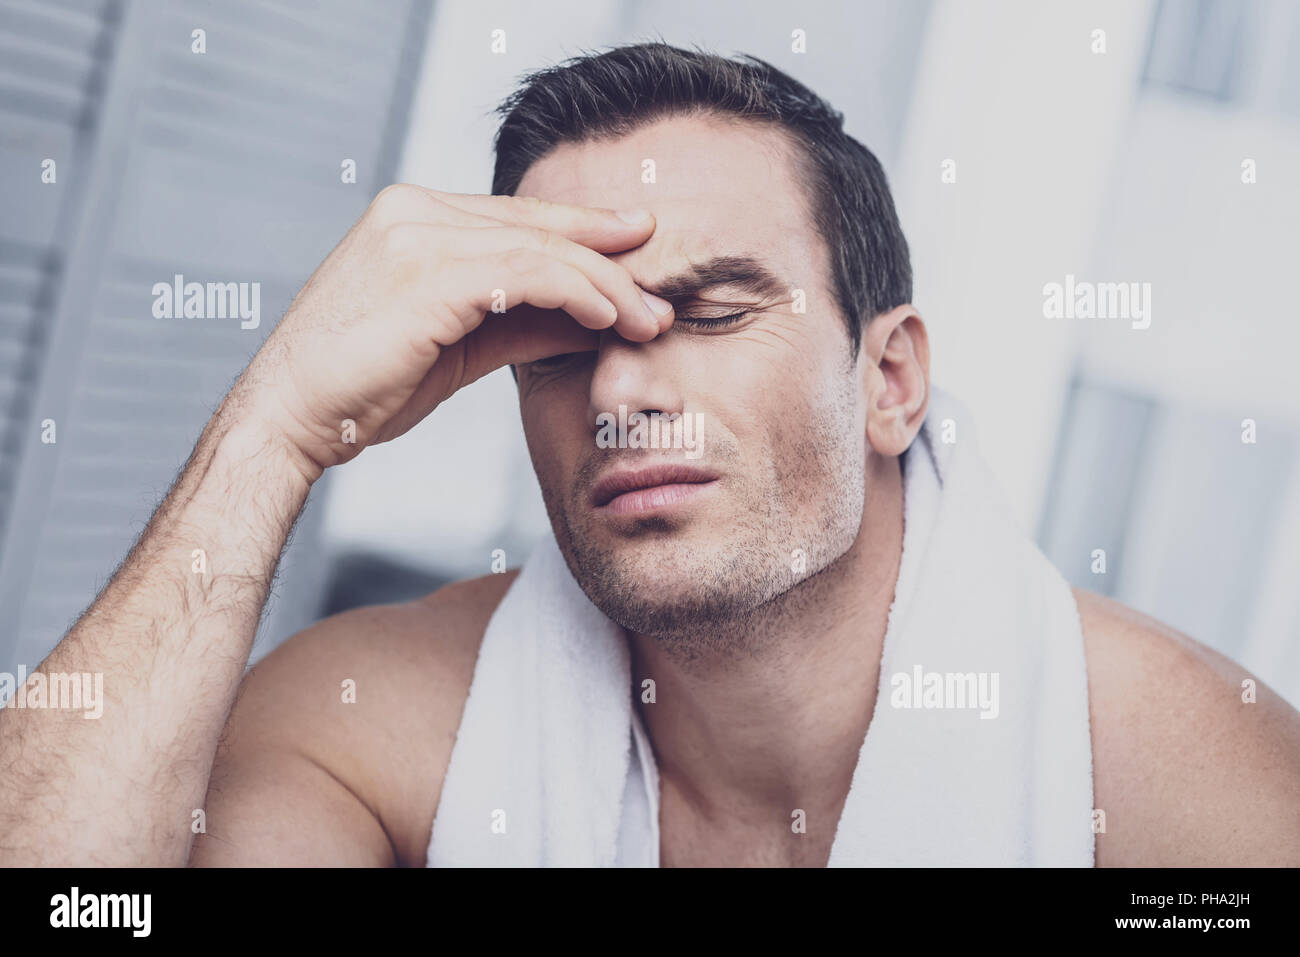 Tired man compressing nose with the finge - Stock Image